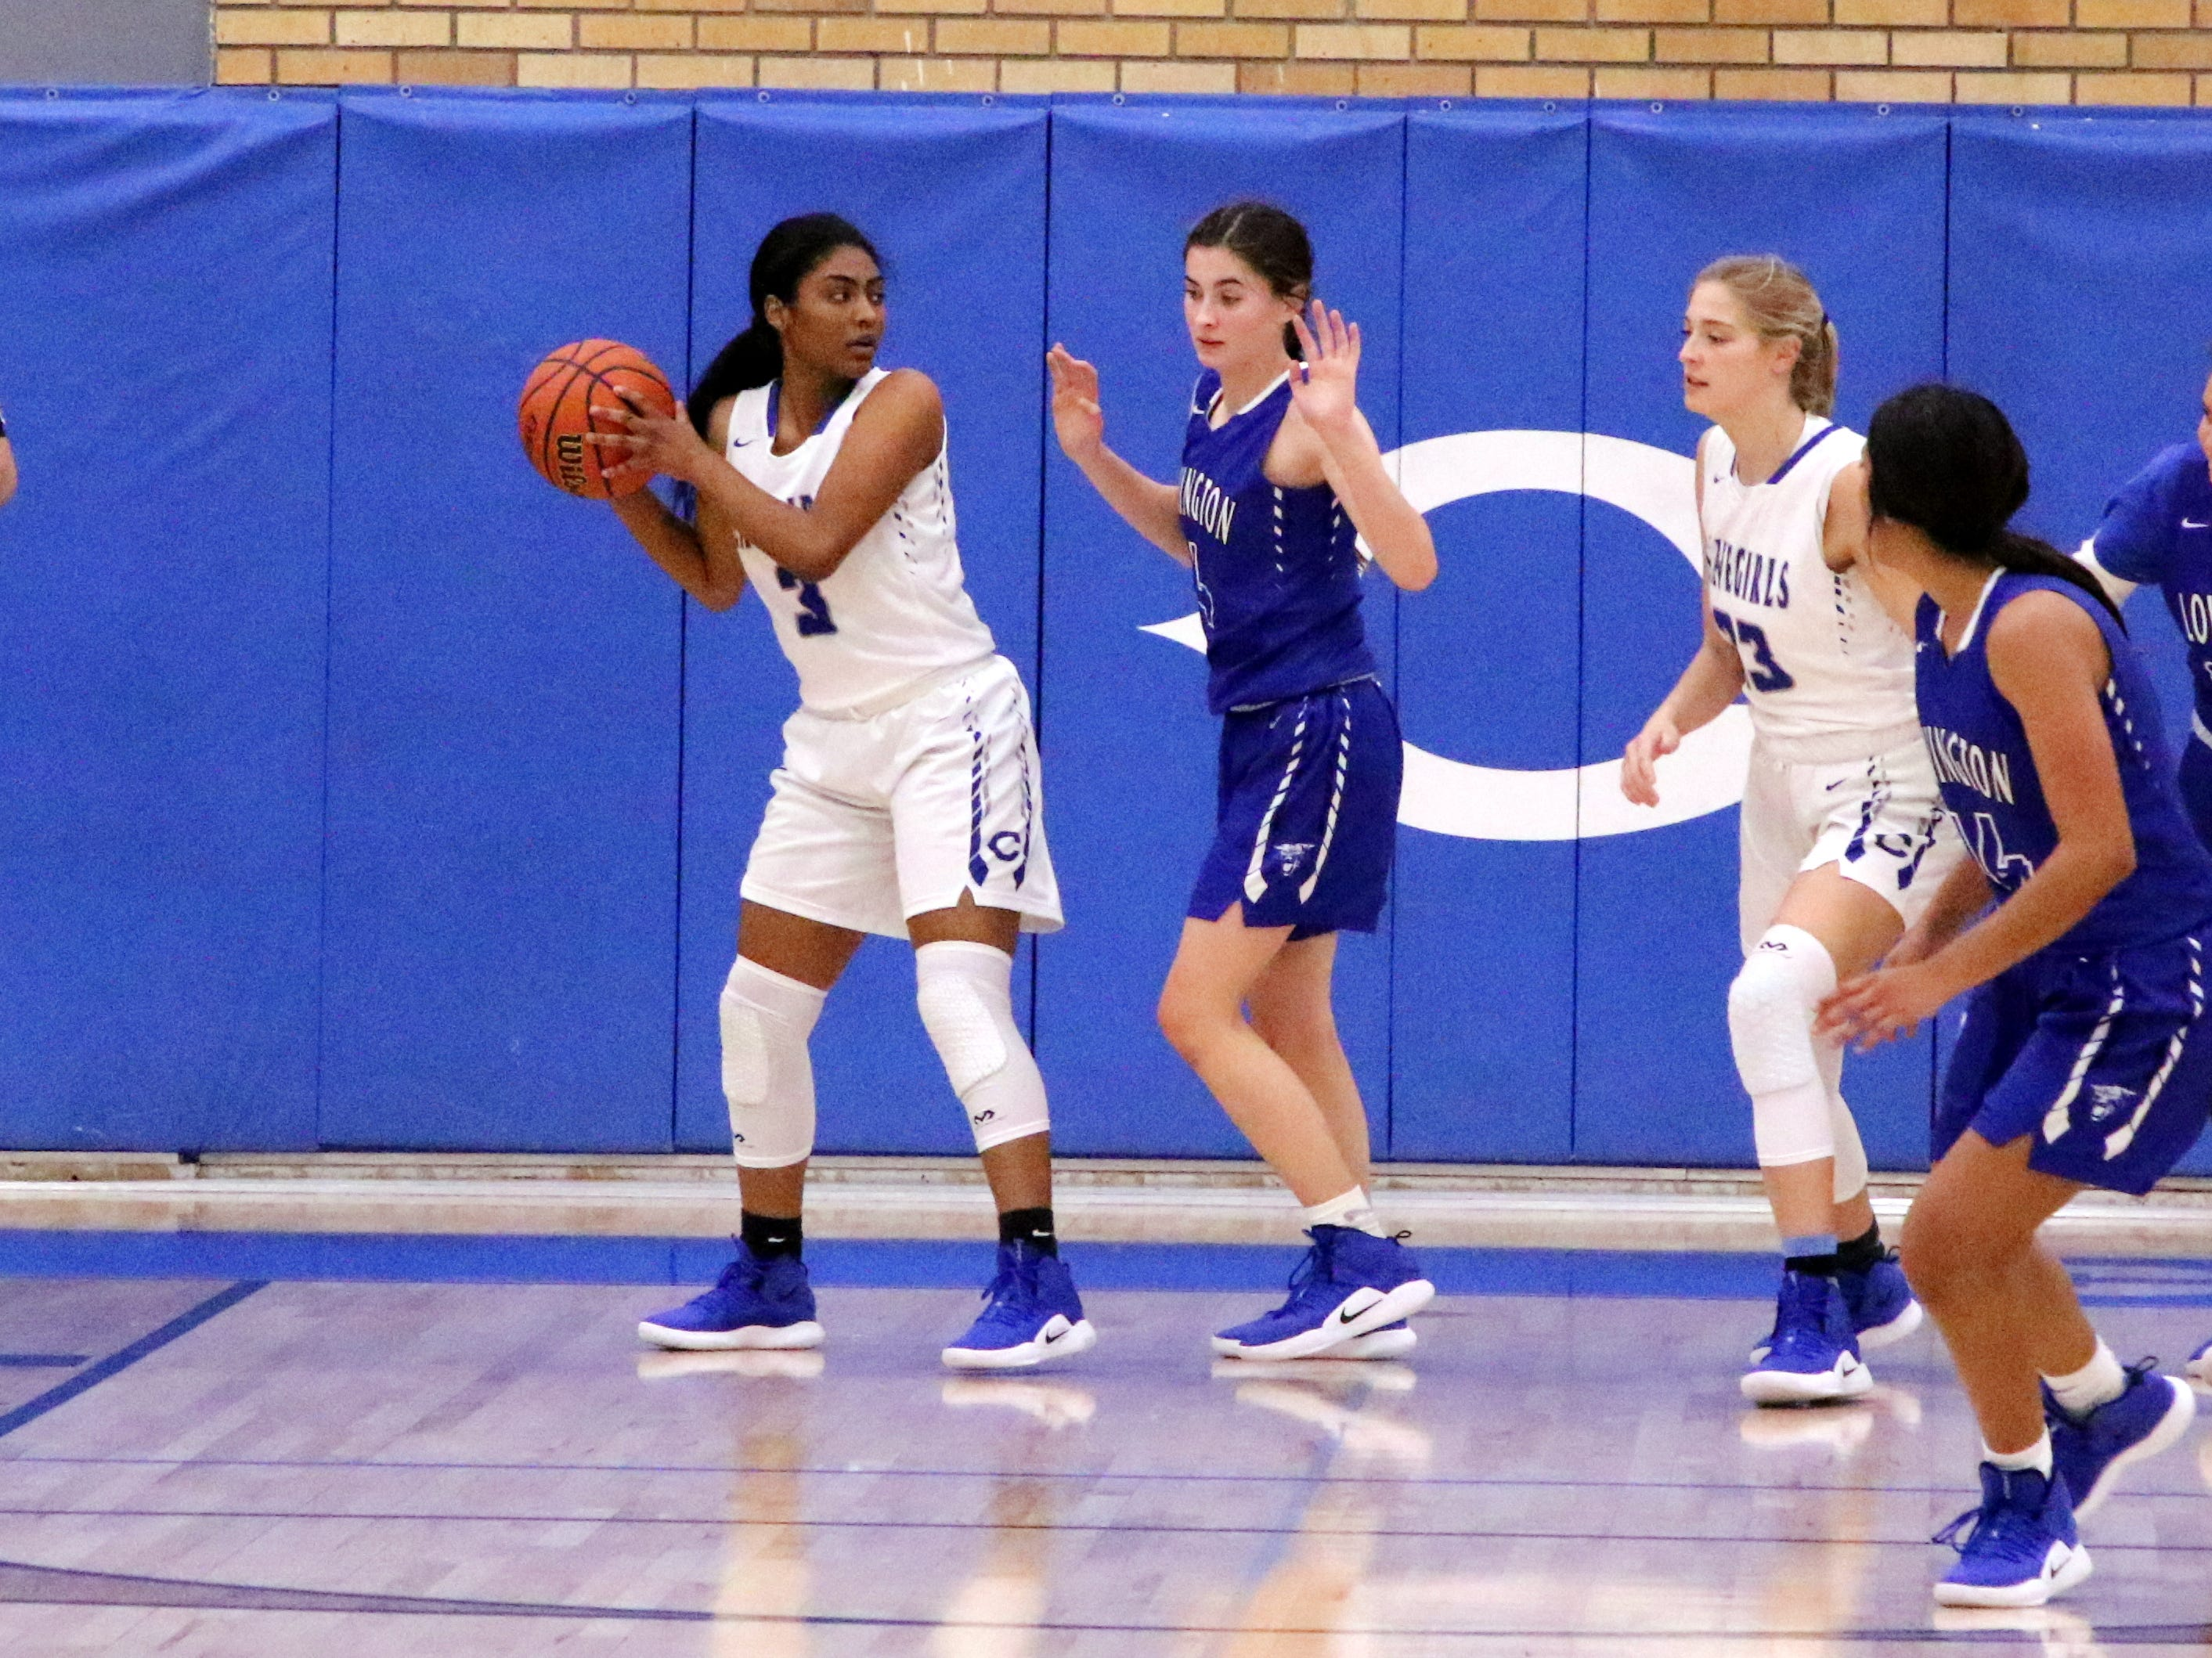 Destiny Young (3) pulls down a rebound in the second half of Tuesday's game against Lovington.